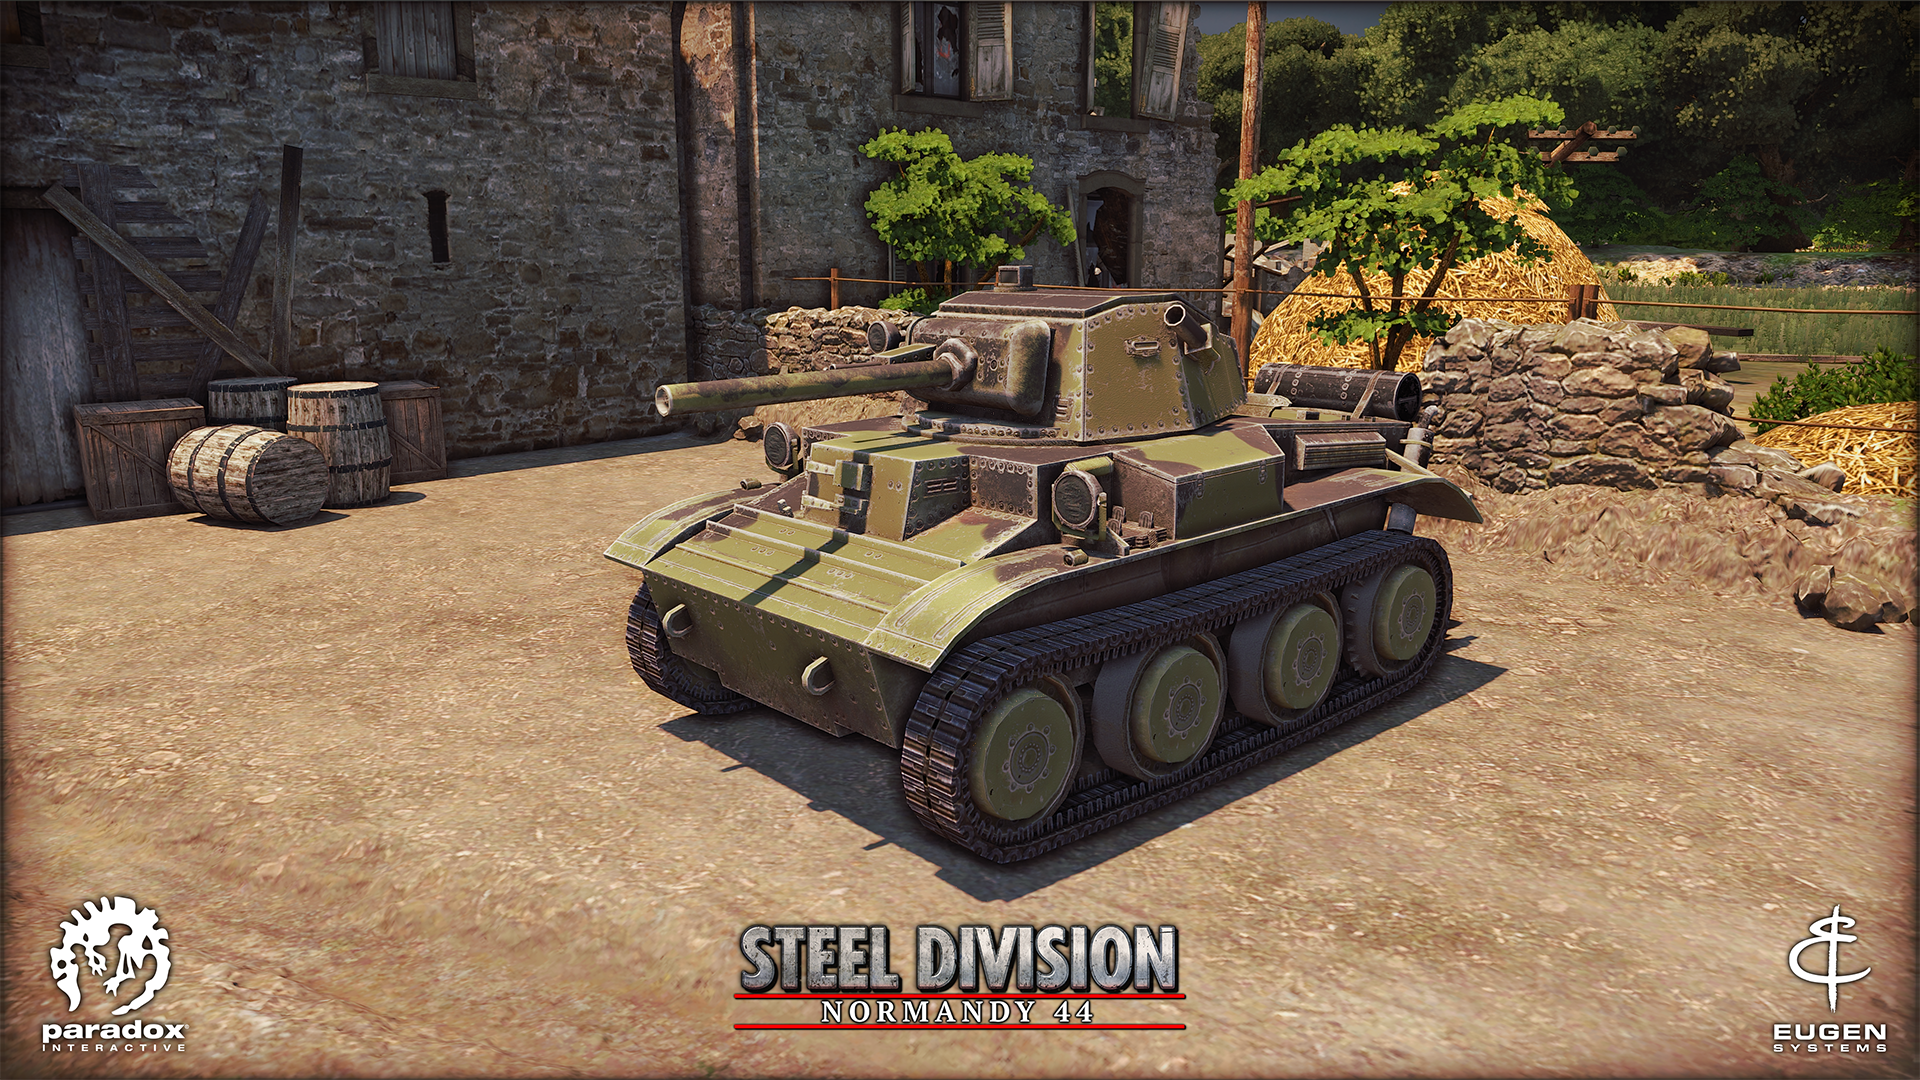 Steel Division: Normandy 44 - 6th Airborne Division